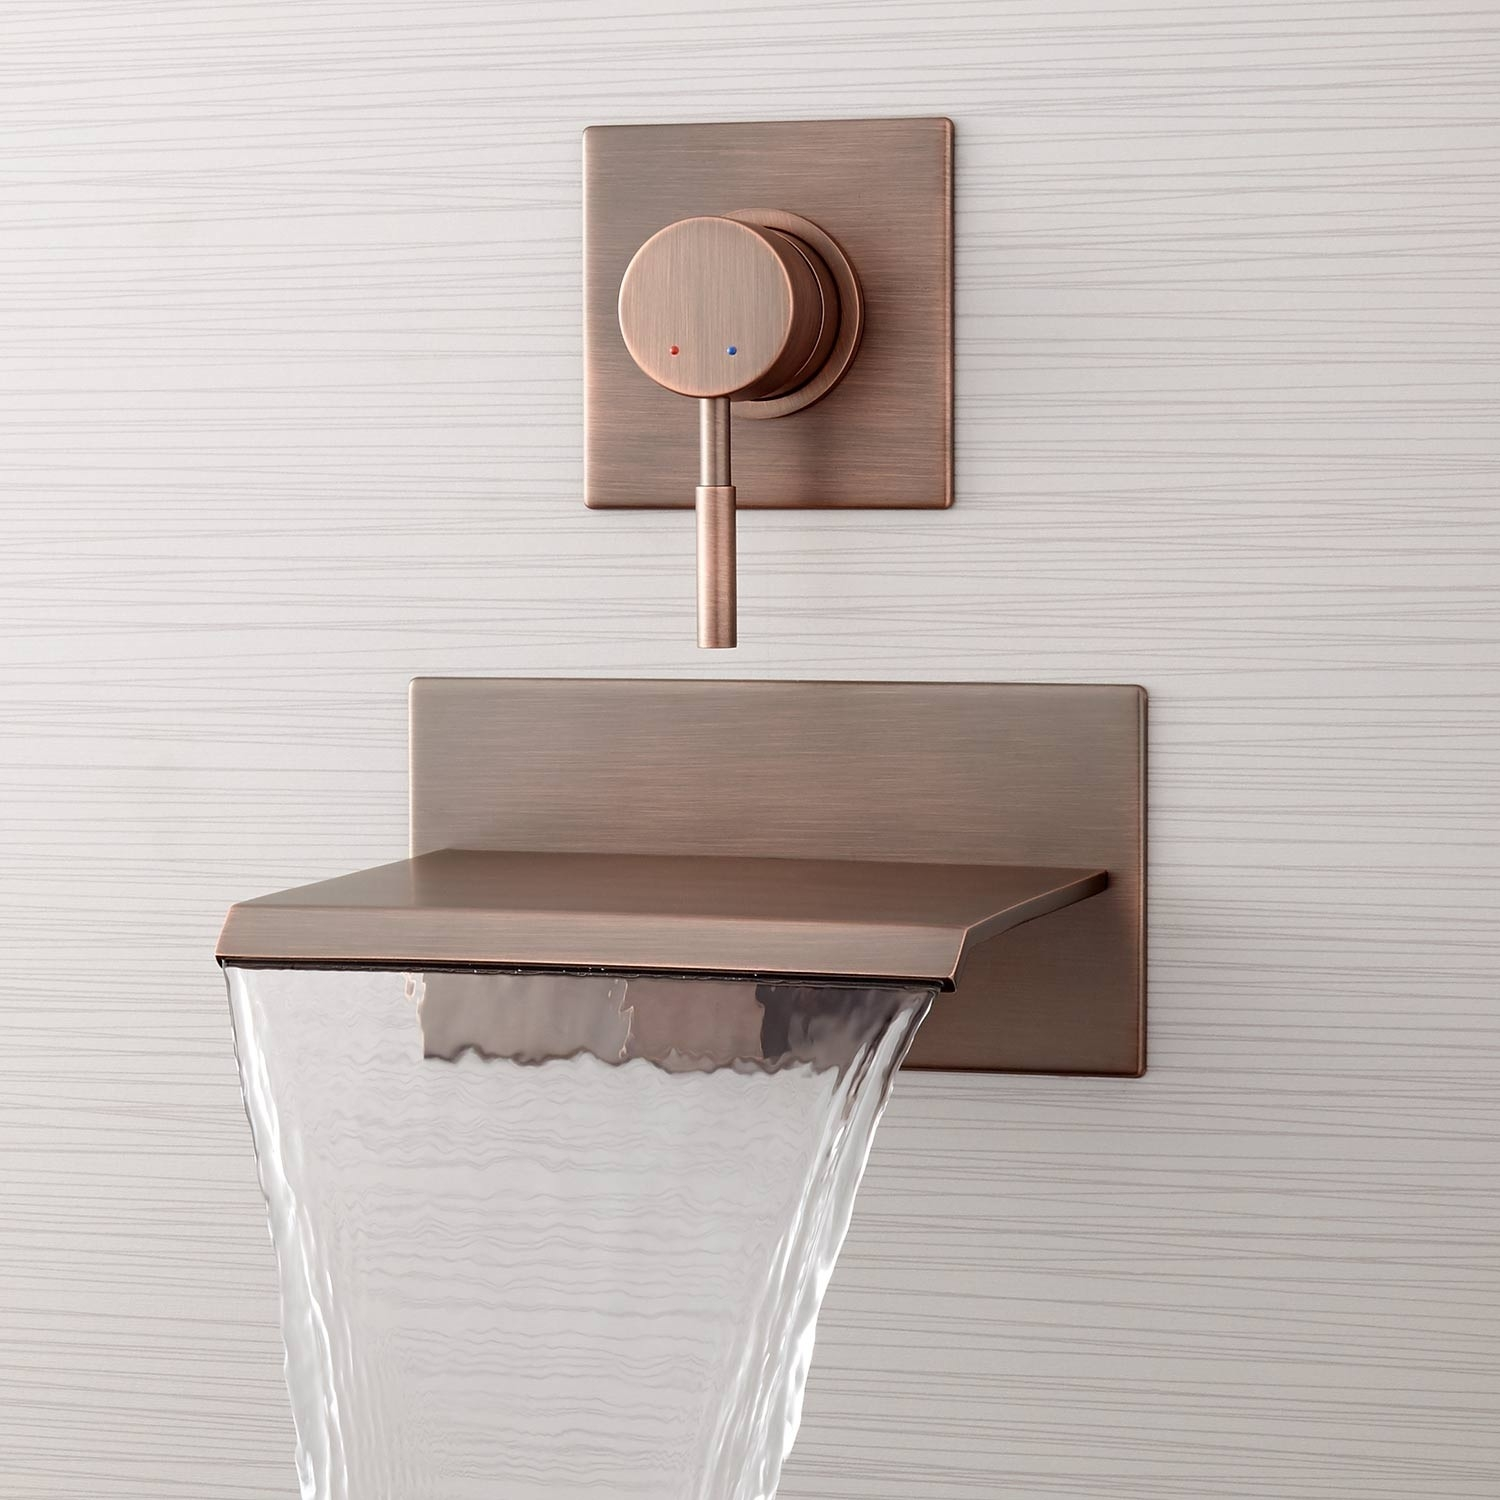 faucets coming out of wall faucets coming out of wall lavelle wall mount waterfall tub faucet bathroom 1500 x 1500